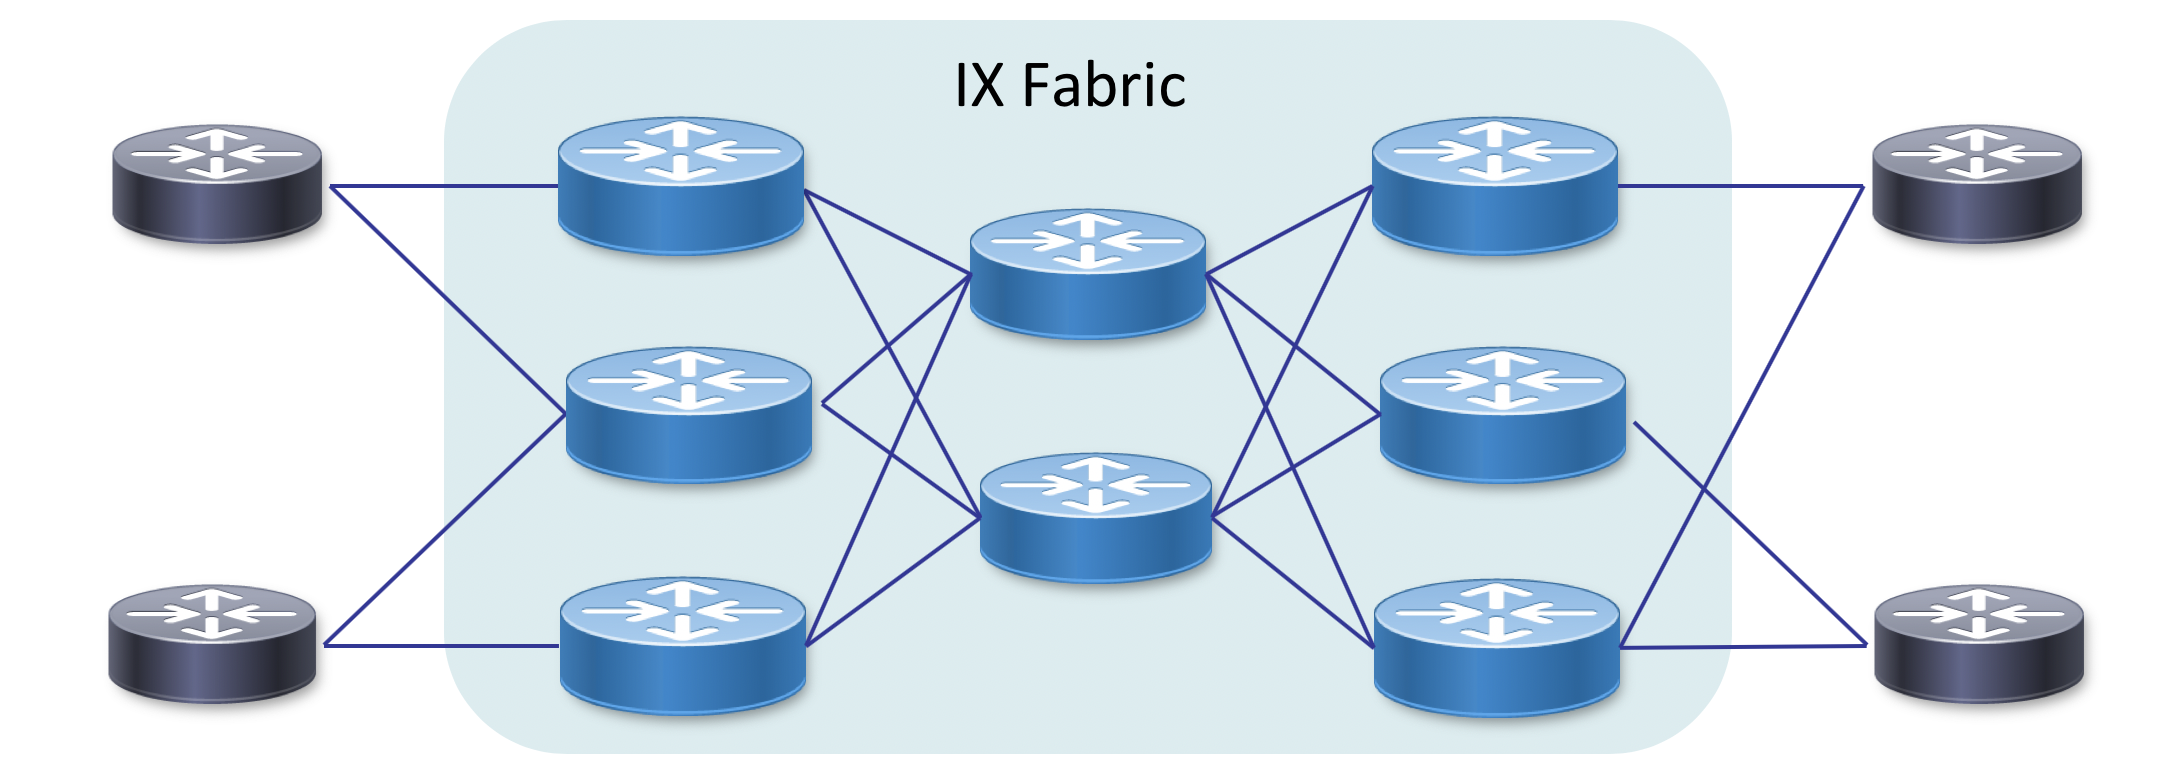 ixp-scale-out.png